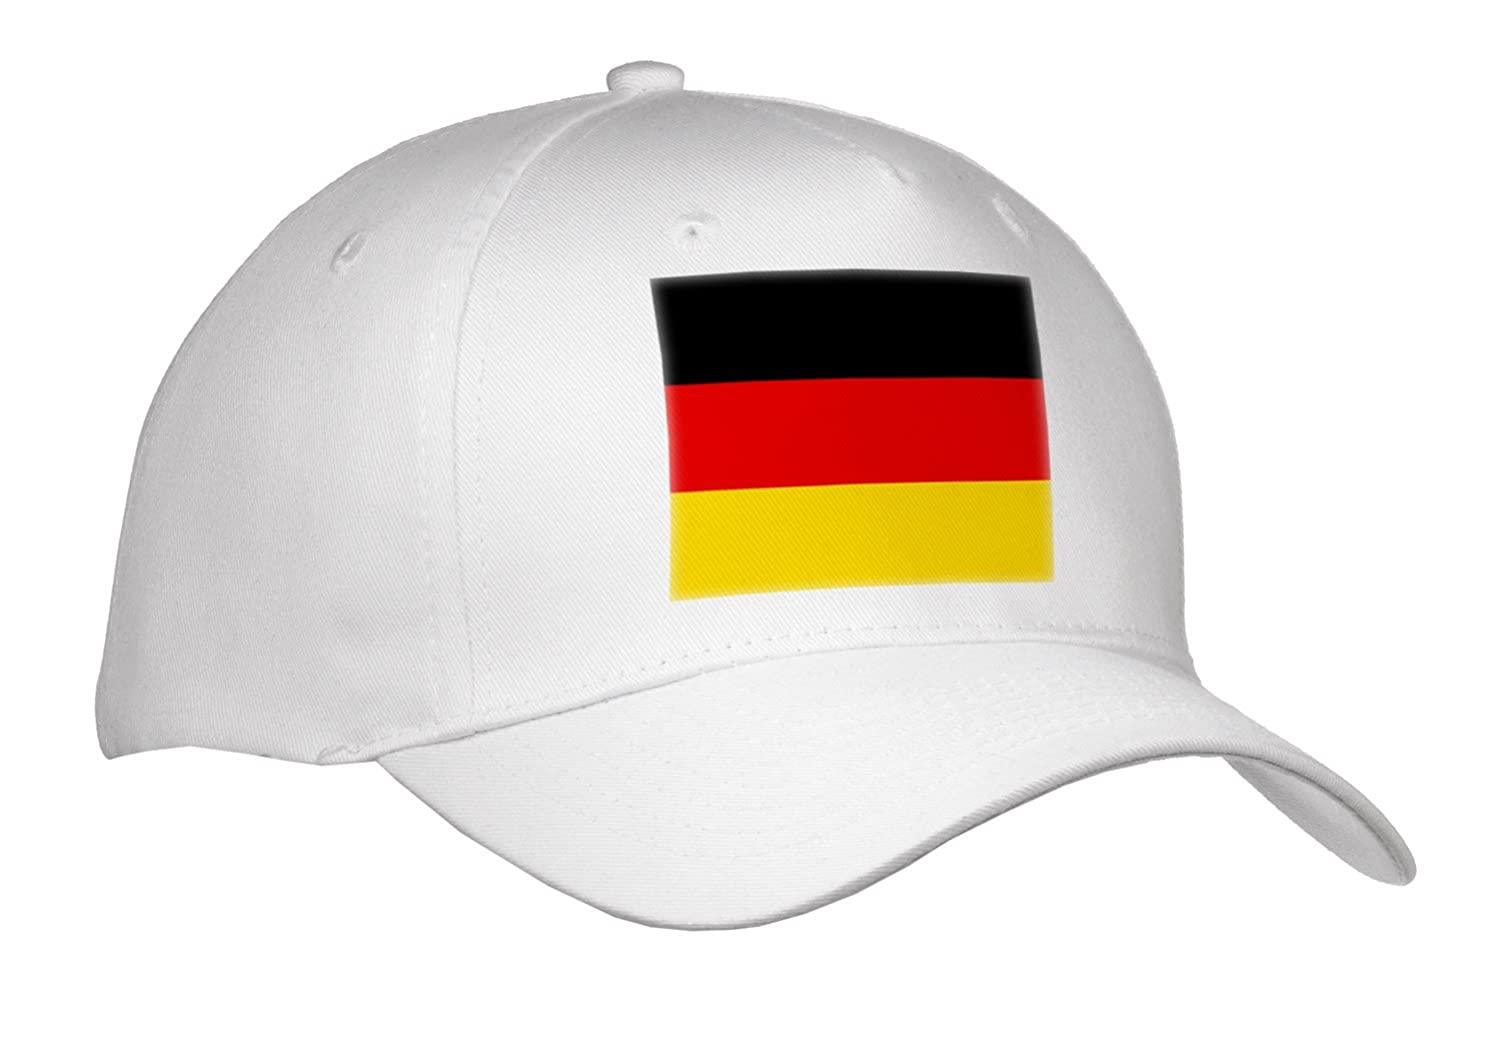 InspirationzStore Flags - Flag of Germany - German black red yellow gold horizontal stripes - European Europe country world - Caps room id flag system 6 flags primary colors